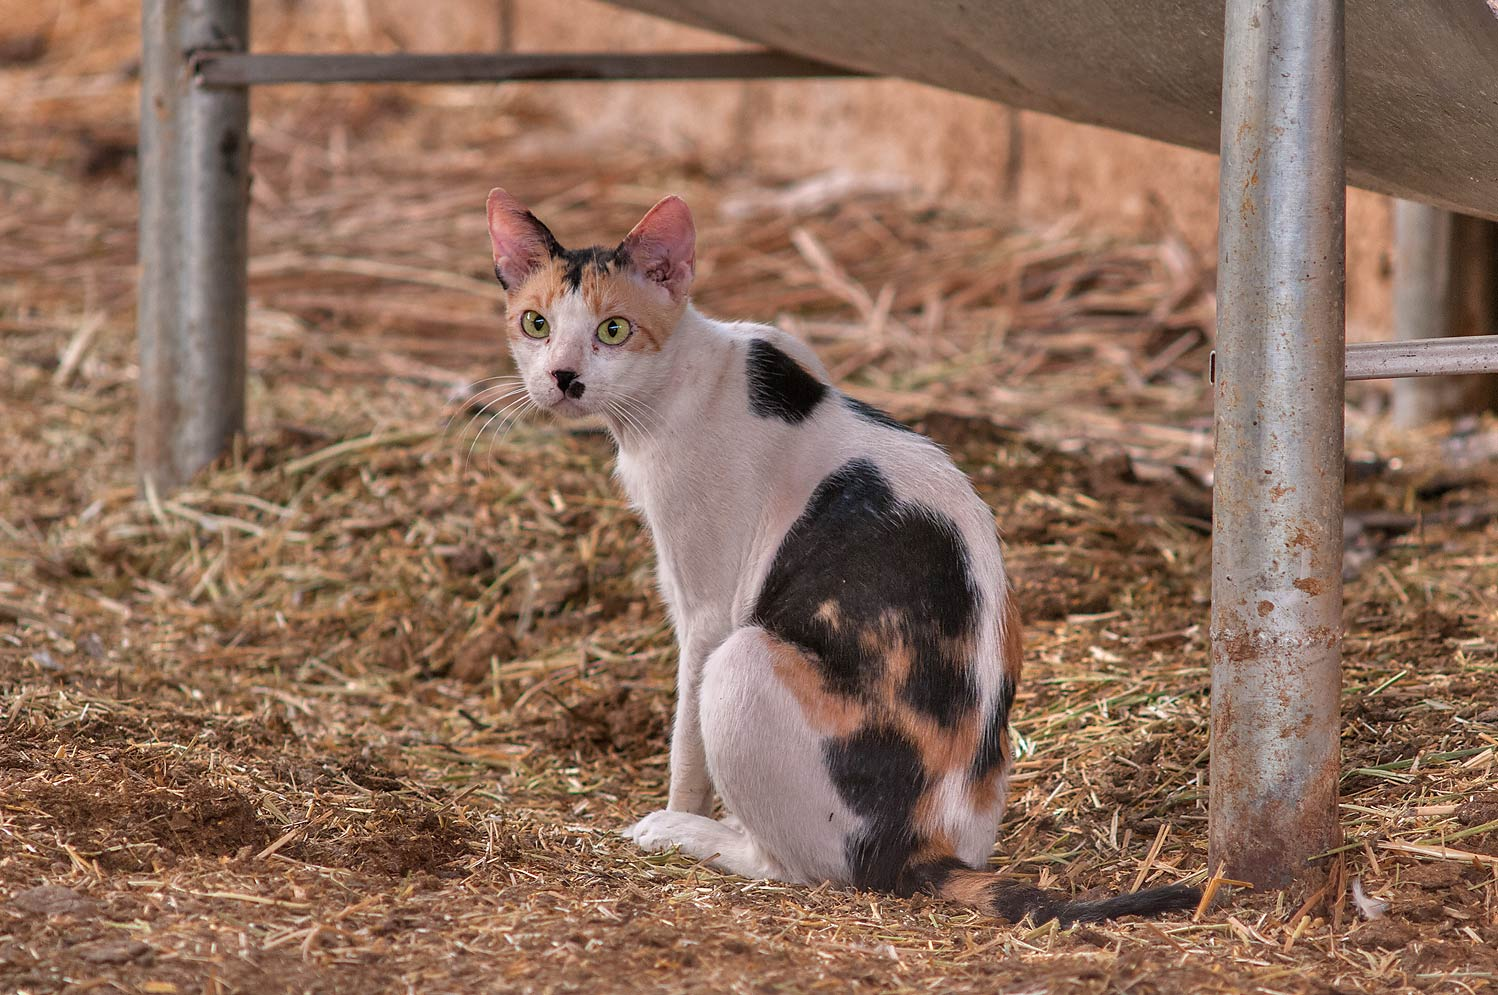 Calico cat sitting in Camel Market, Livestock Markets area in Abu Hamour. Doha, Qatar